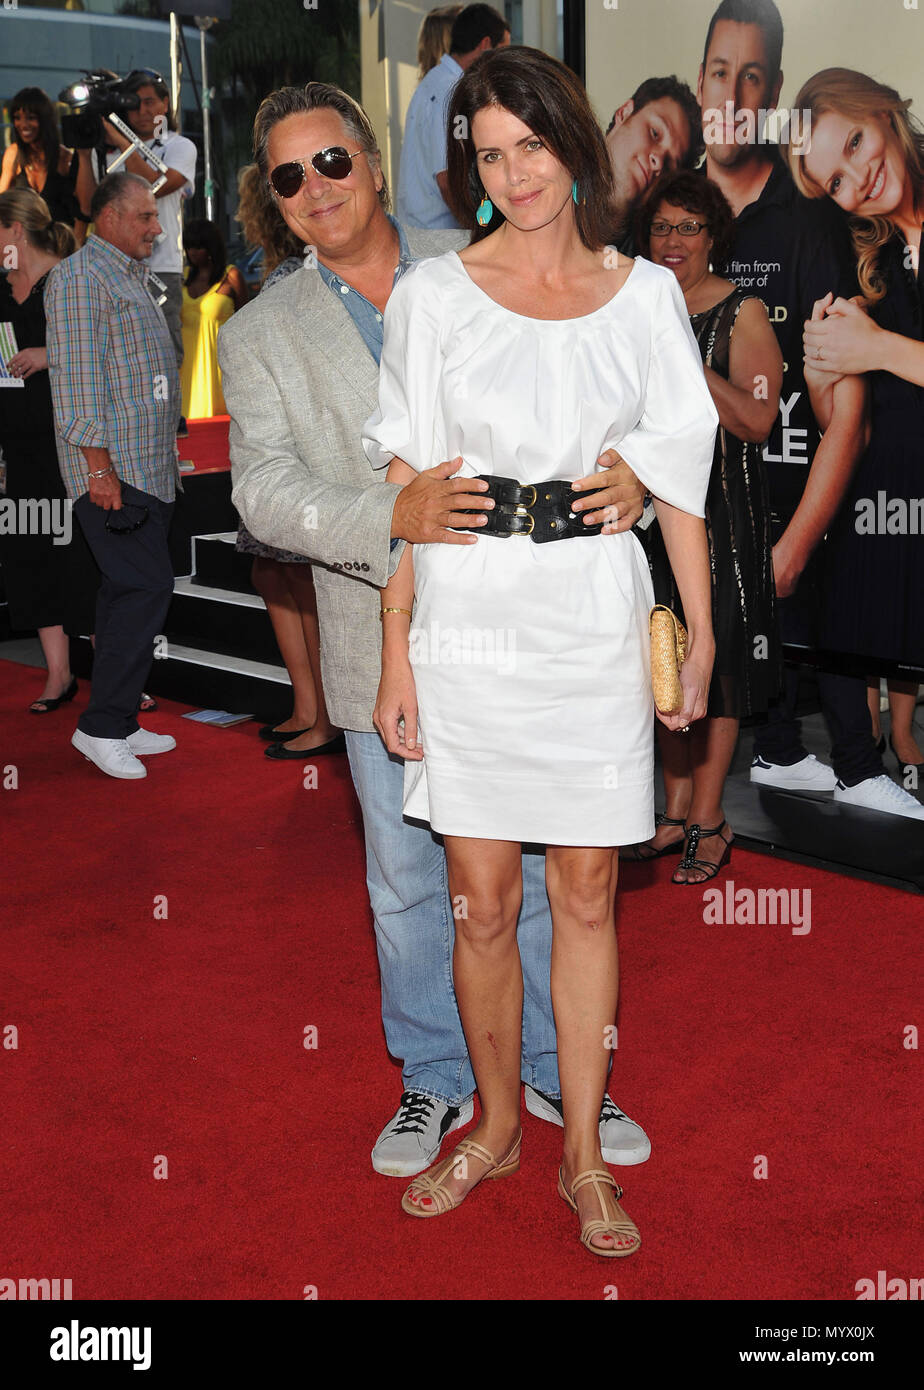 91ca31ff32327 Don Johnson and wife Kelley Phleger - Funny People Premiere at the Arclight  Theatre In Los Angeles.DonJohnson PhlegerKelley 12 Event in Hollywood Life  ...